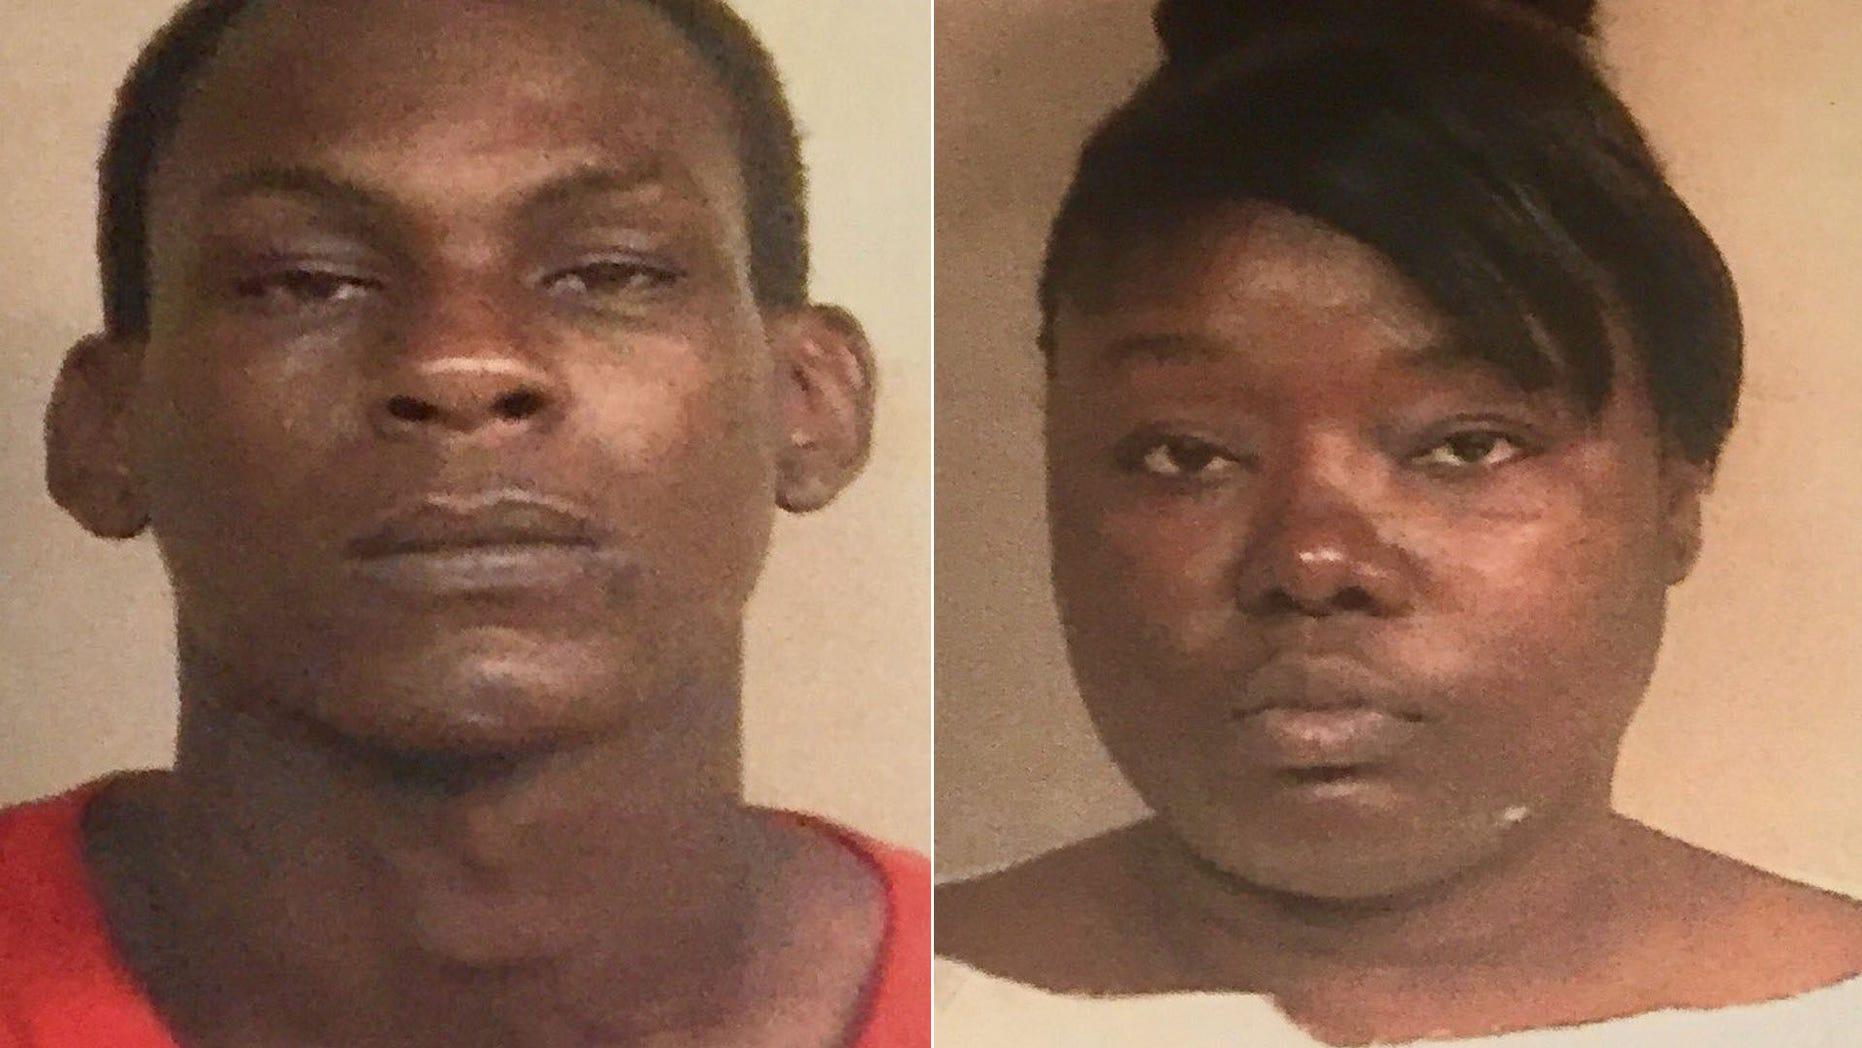 26-year-old Kendrick Jackson (left) and 35-year-old Lakia Bradley (right) have been charged with aggravated assault and shooting into an occupied vehicle.